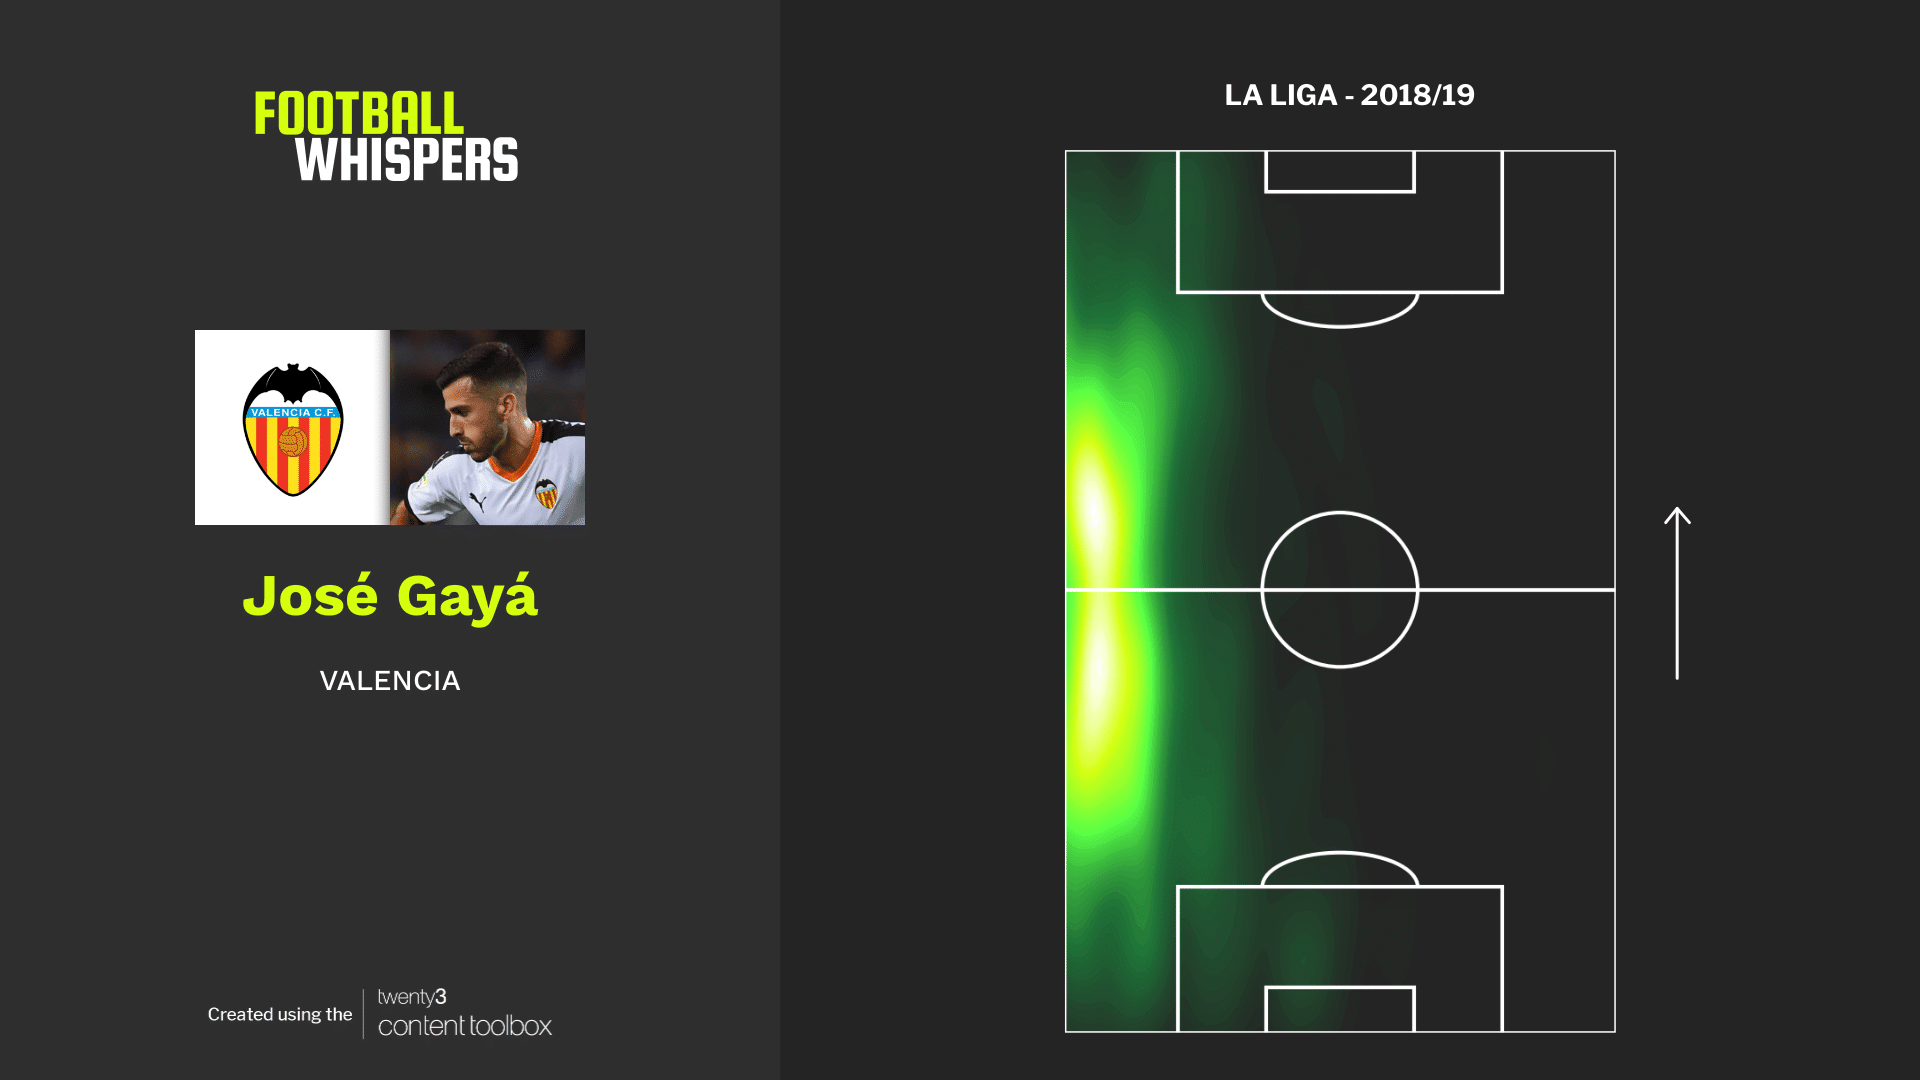 Jose Gaya, heatmap